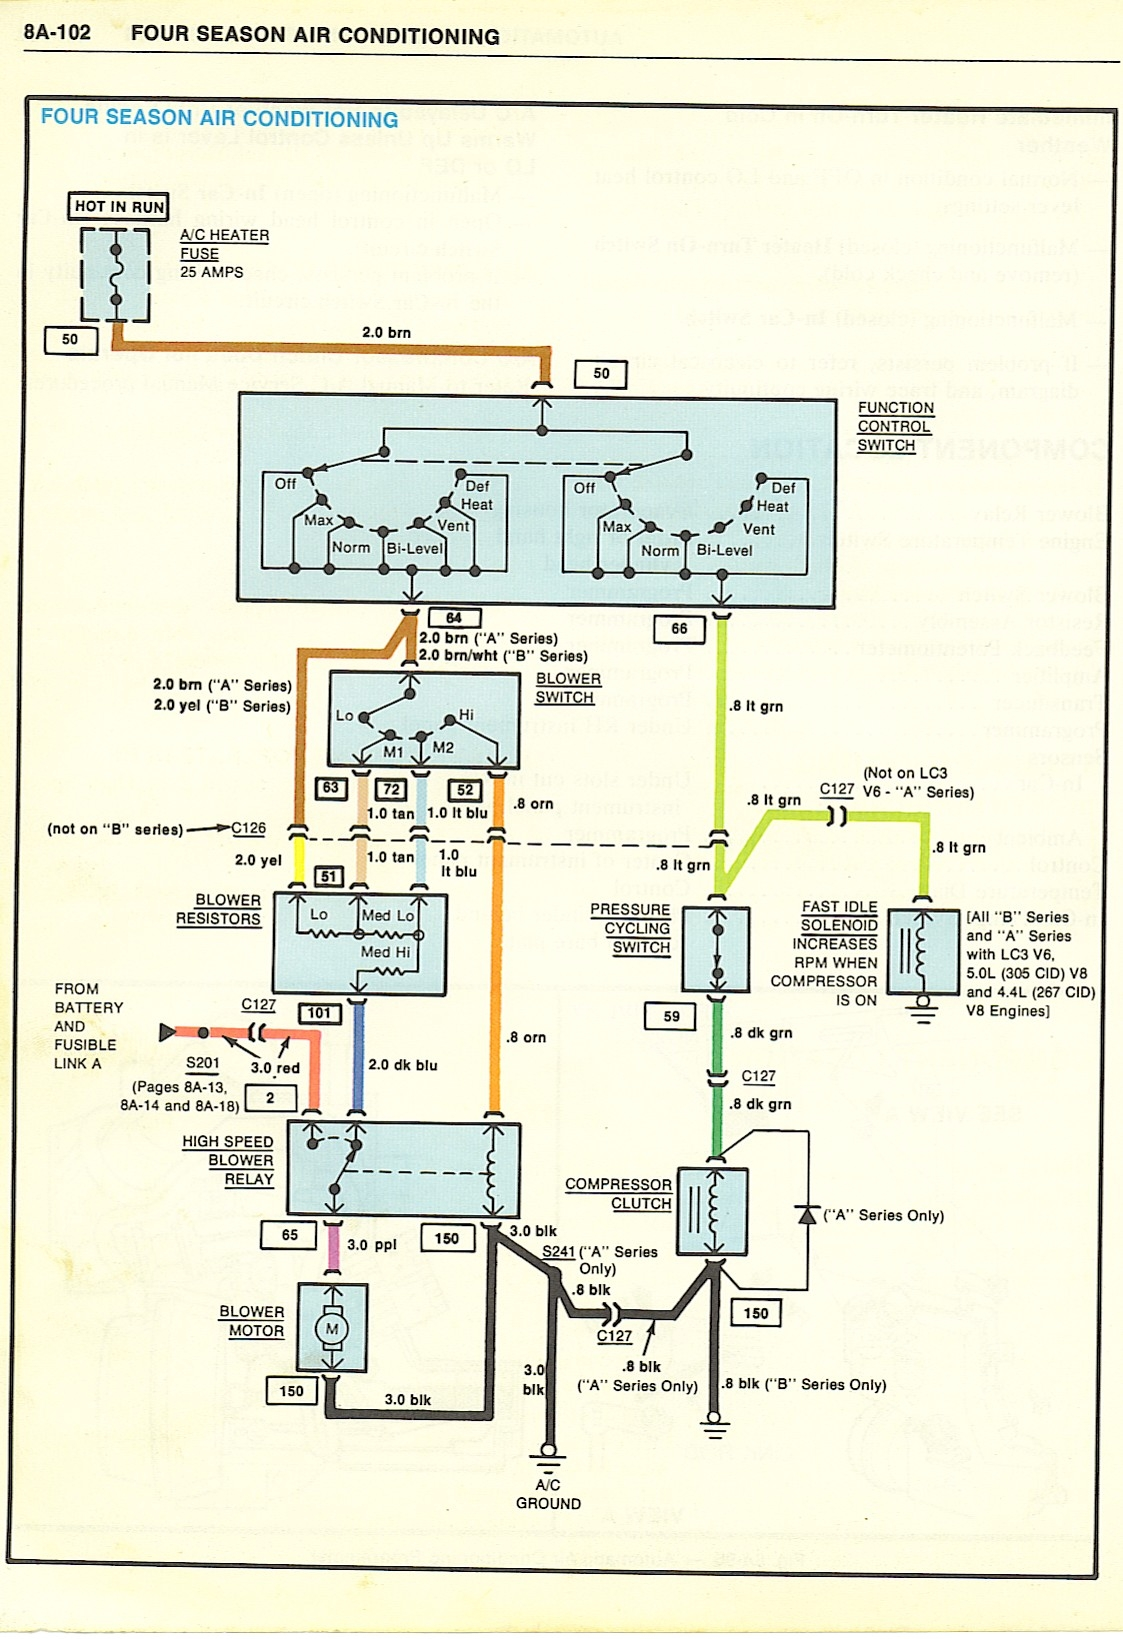 1968 FourSeasonAirConditioner chevy diagrams 68 Chevelle Wiring at webbmarketing.co